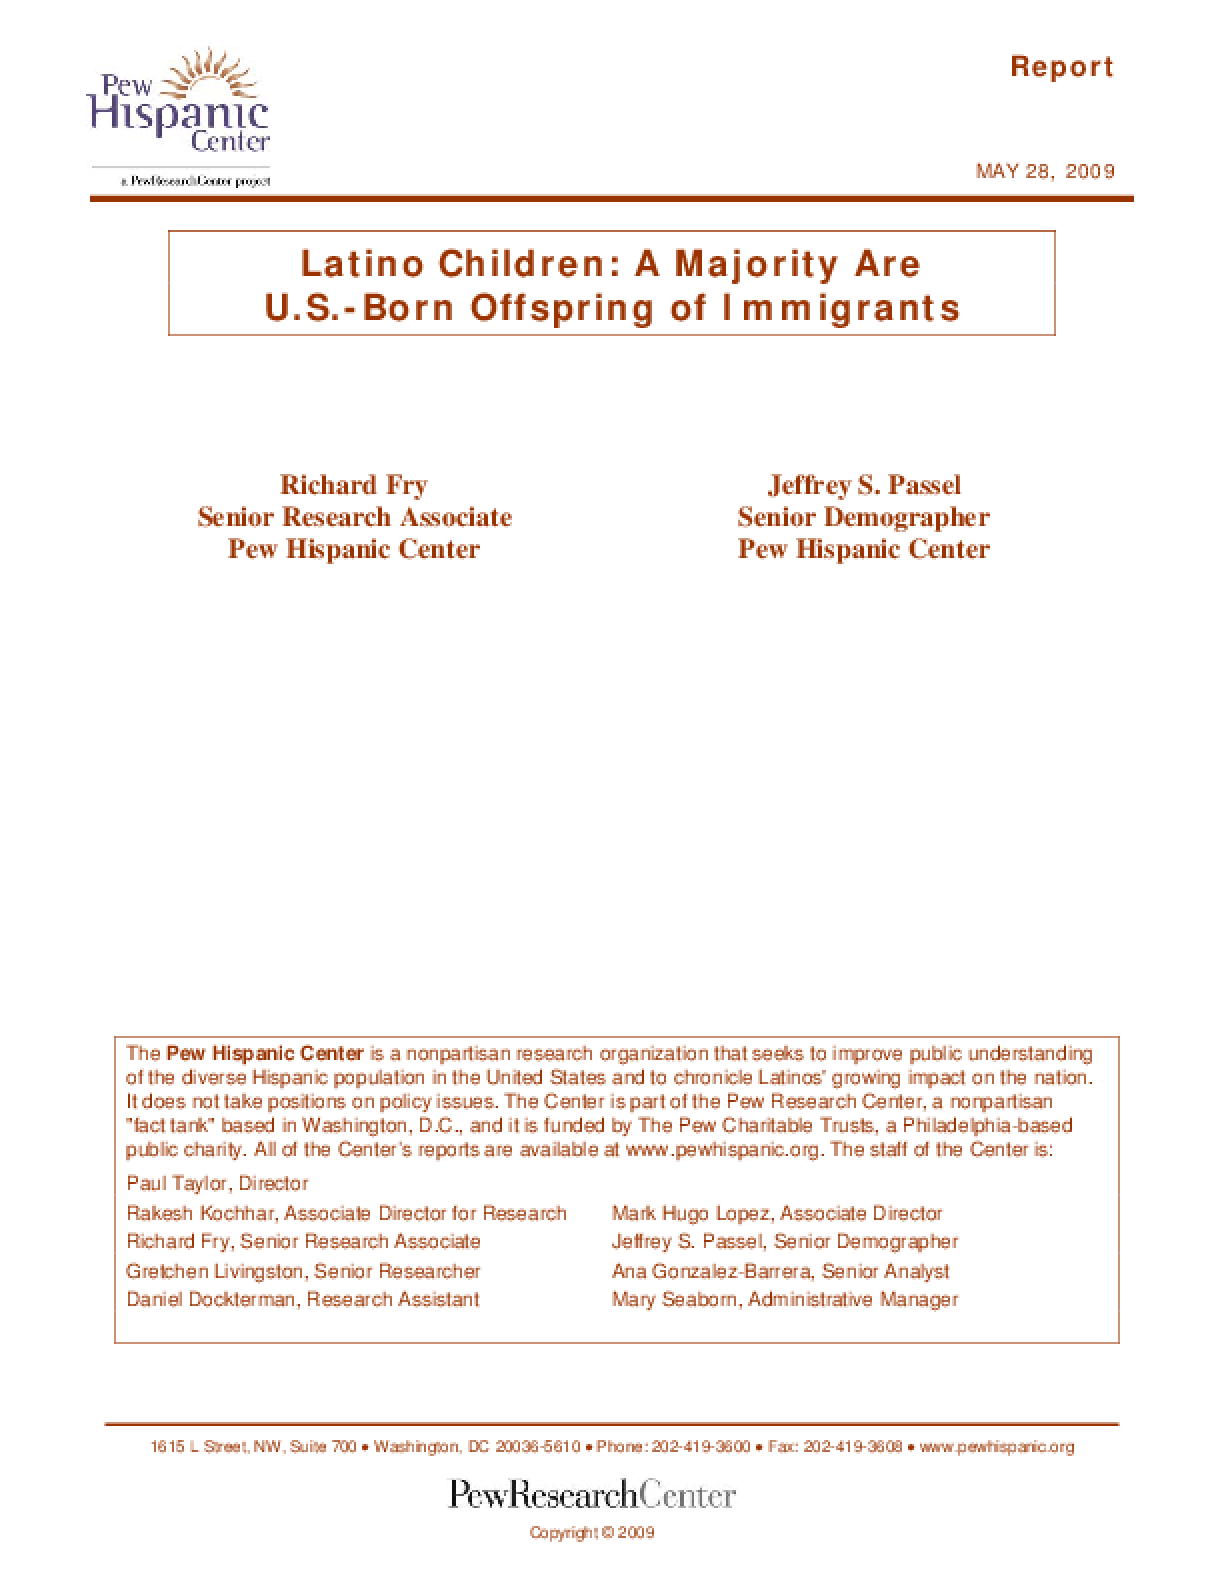 Latino Children: A Majority Are U.S.-Born Offspring of Immigrants